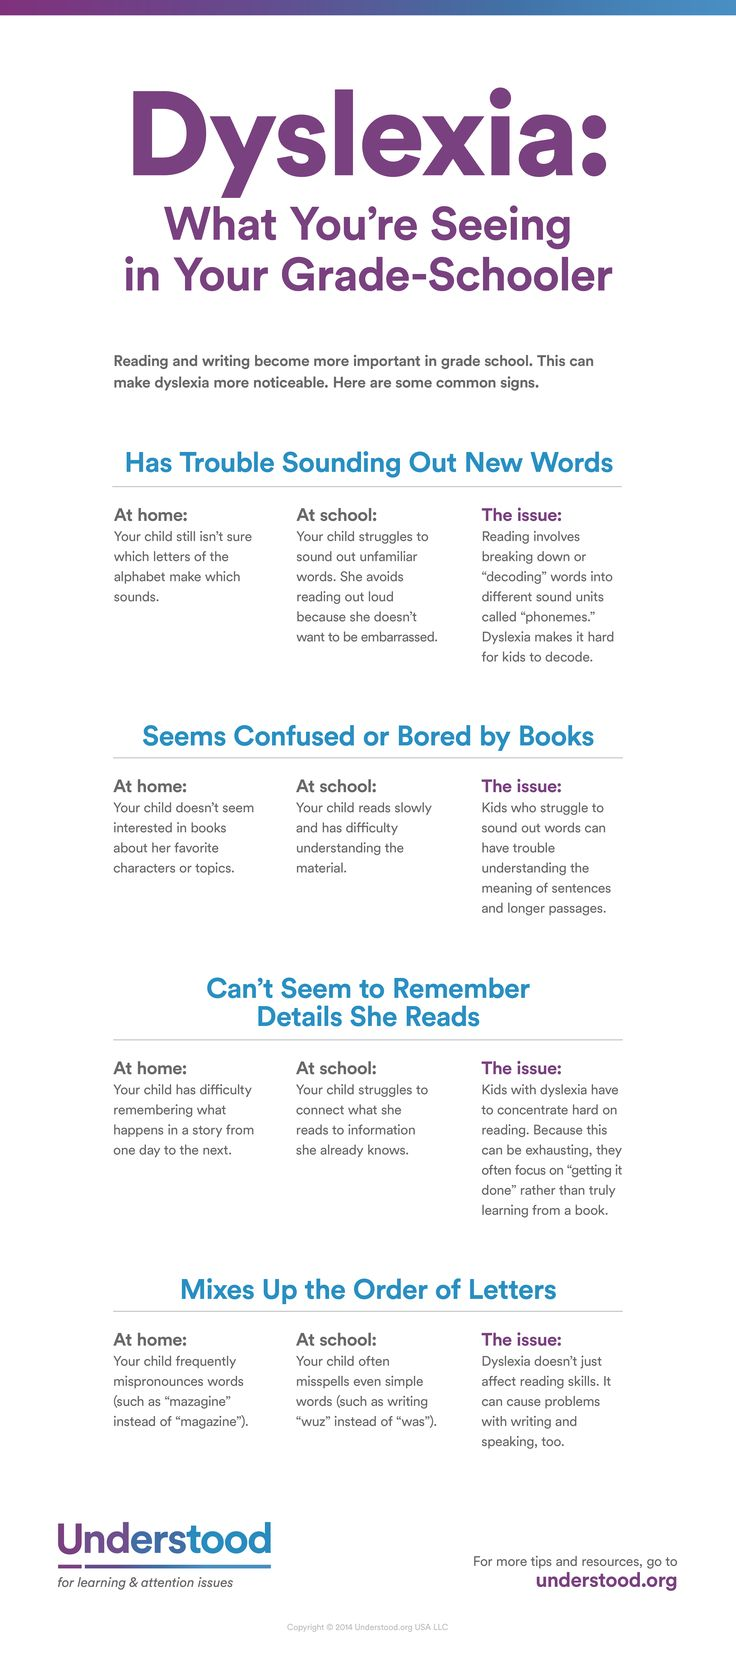 Worksheet Reading Strategies For Students With Dyslexia 1000 images about dyslexia and reading issues on pinterest apps explore signs symptoms of in elementary school noticing the warning a disability your child is